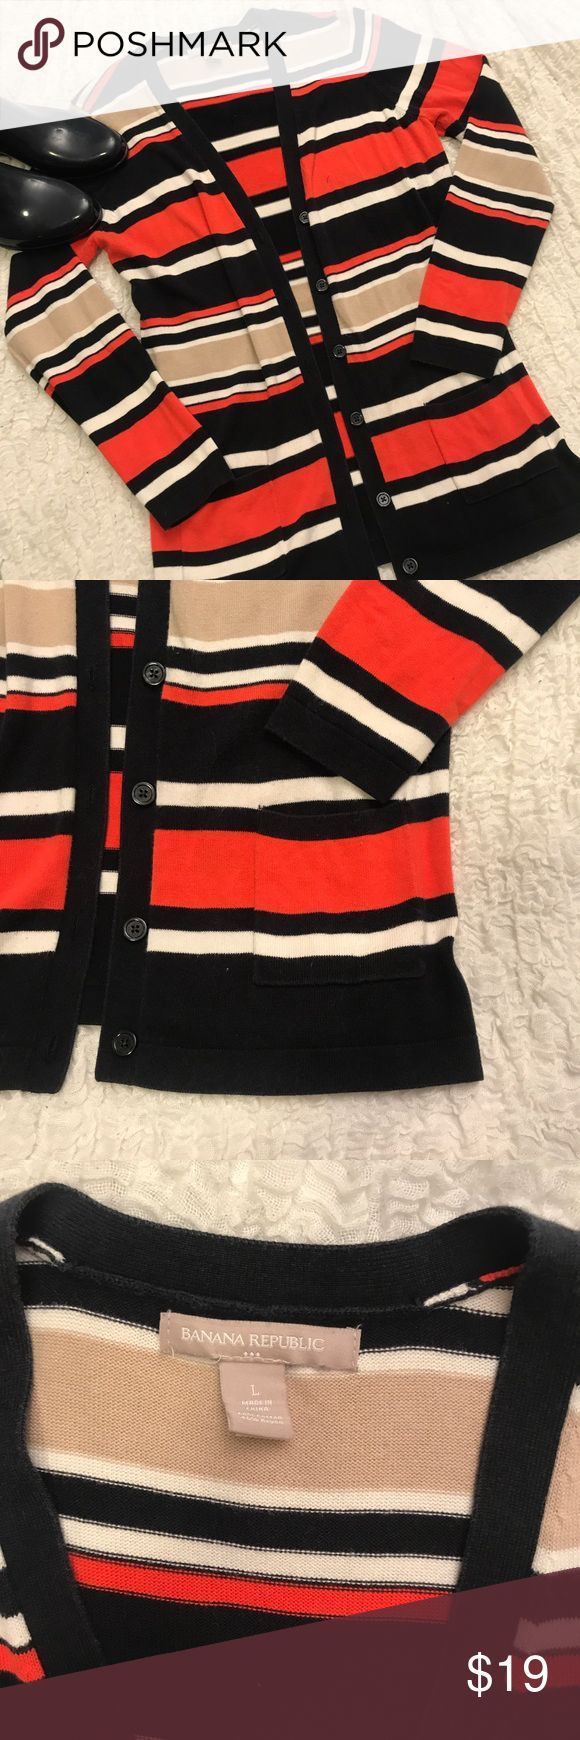 (L) Preppy Banana Republic Cardigan Preppy Nautical cardigan from Banana Republic - size large Banana Republic Sweaters Cardigans